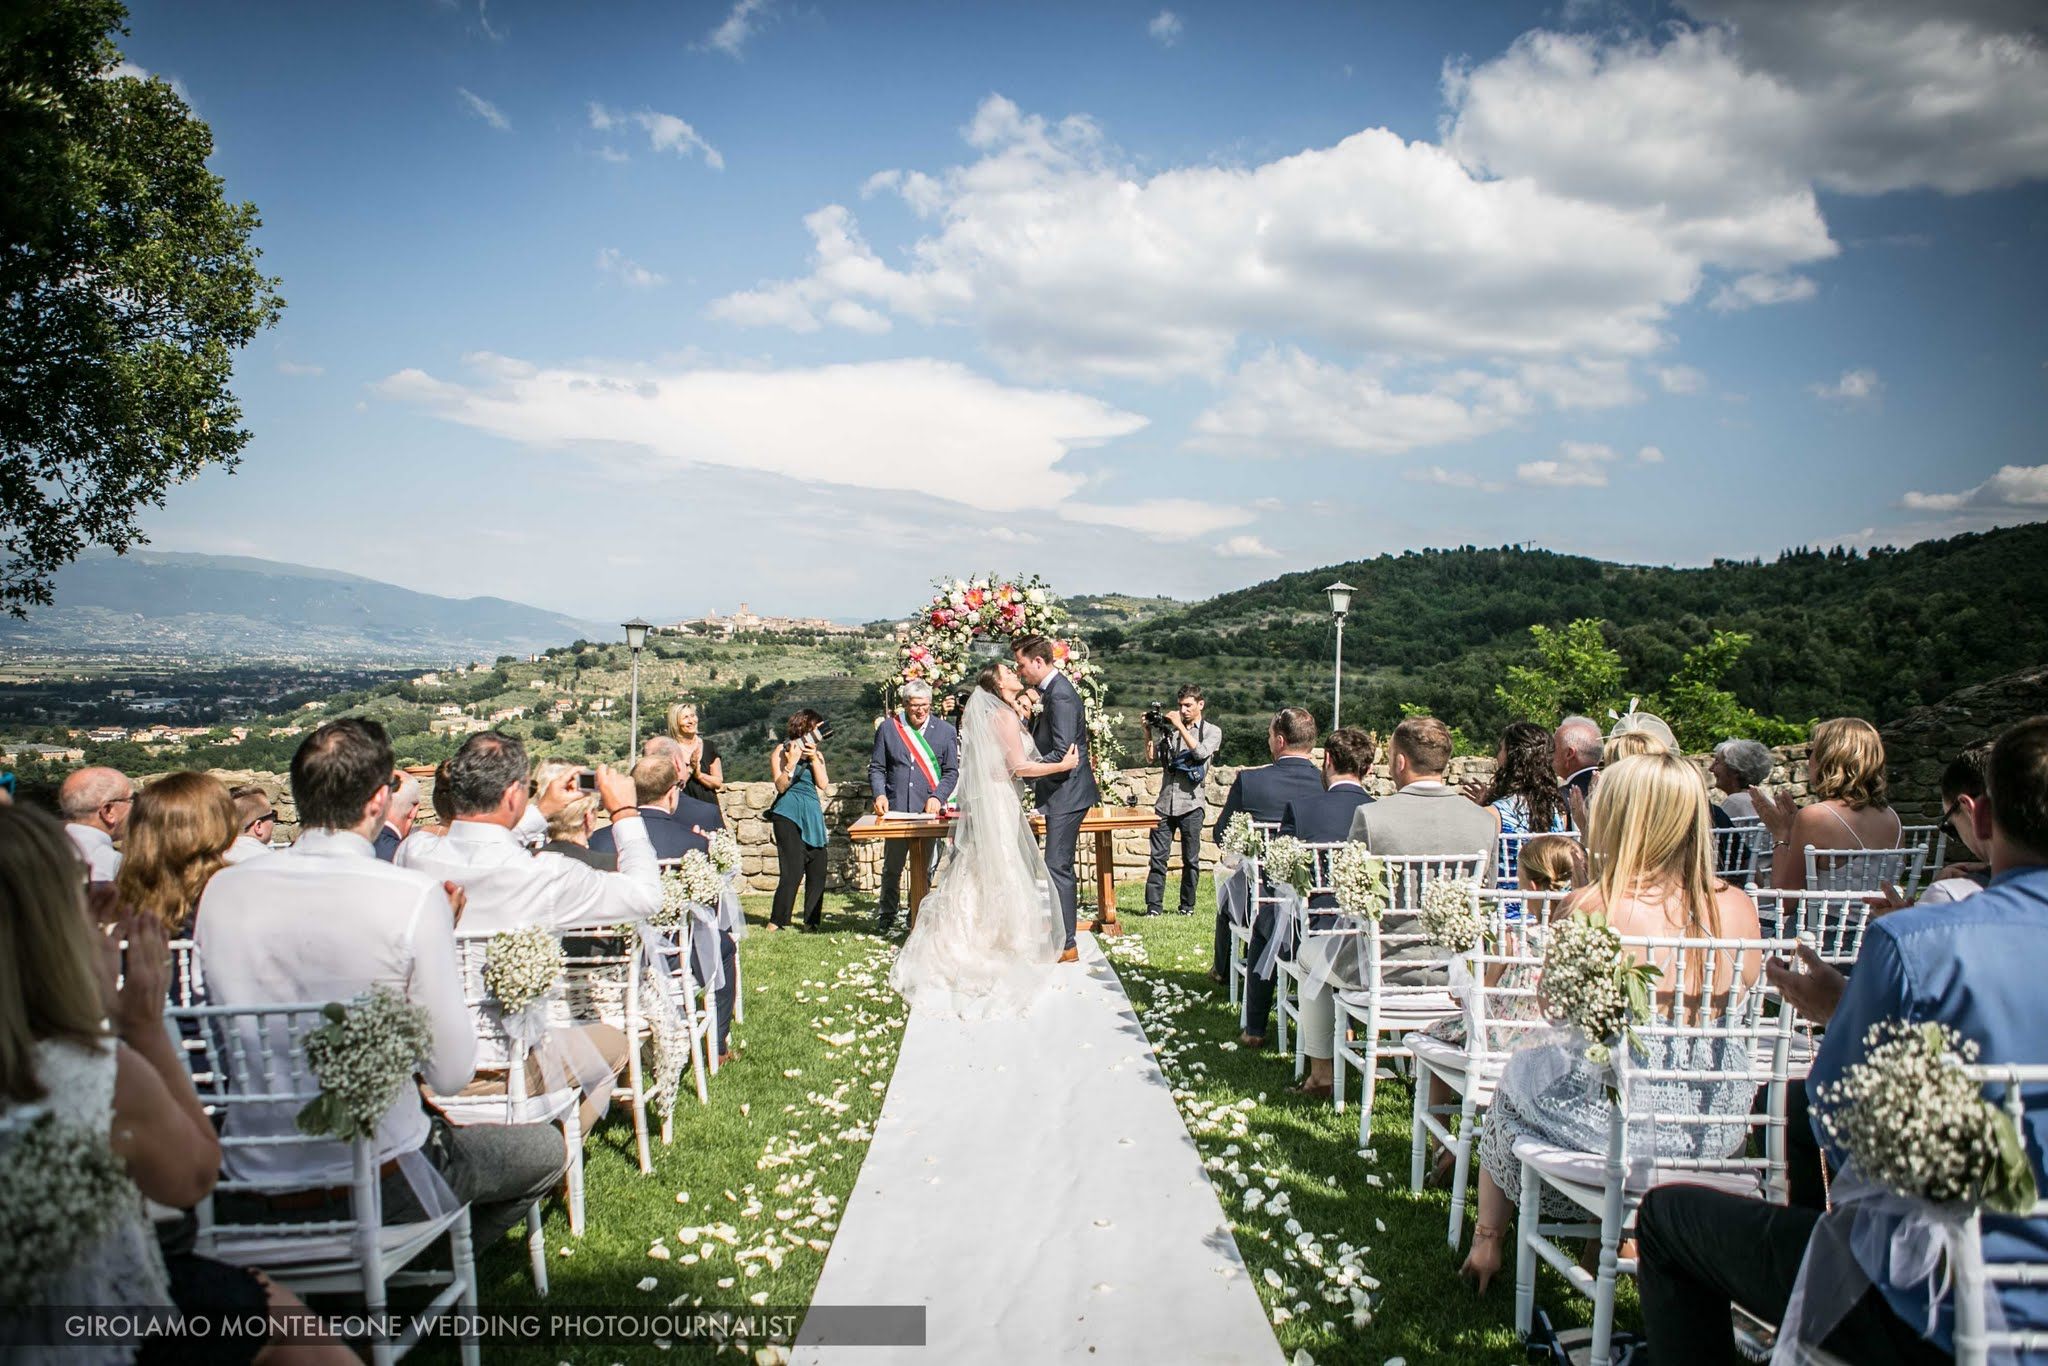 Destination_wedding_ITALY_CASTELLO_DI_ROSCIANO__Robert_&_Danielle_GIROLAMO_MONTELEONE_WEDDING_PHOTOJOURNALIST_foto_matrimonio_civile2017maggio311627004525